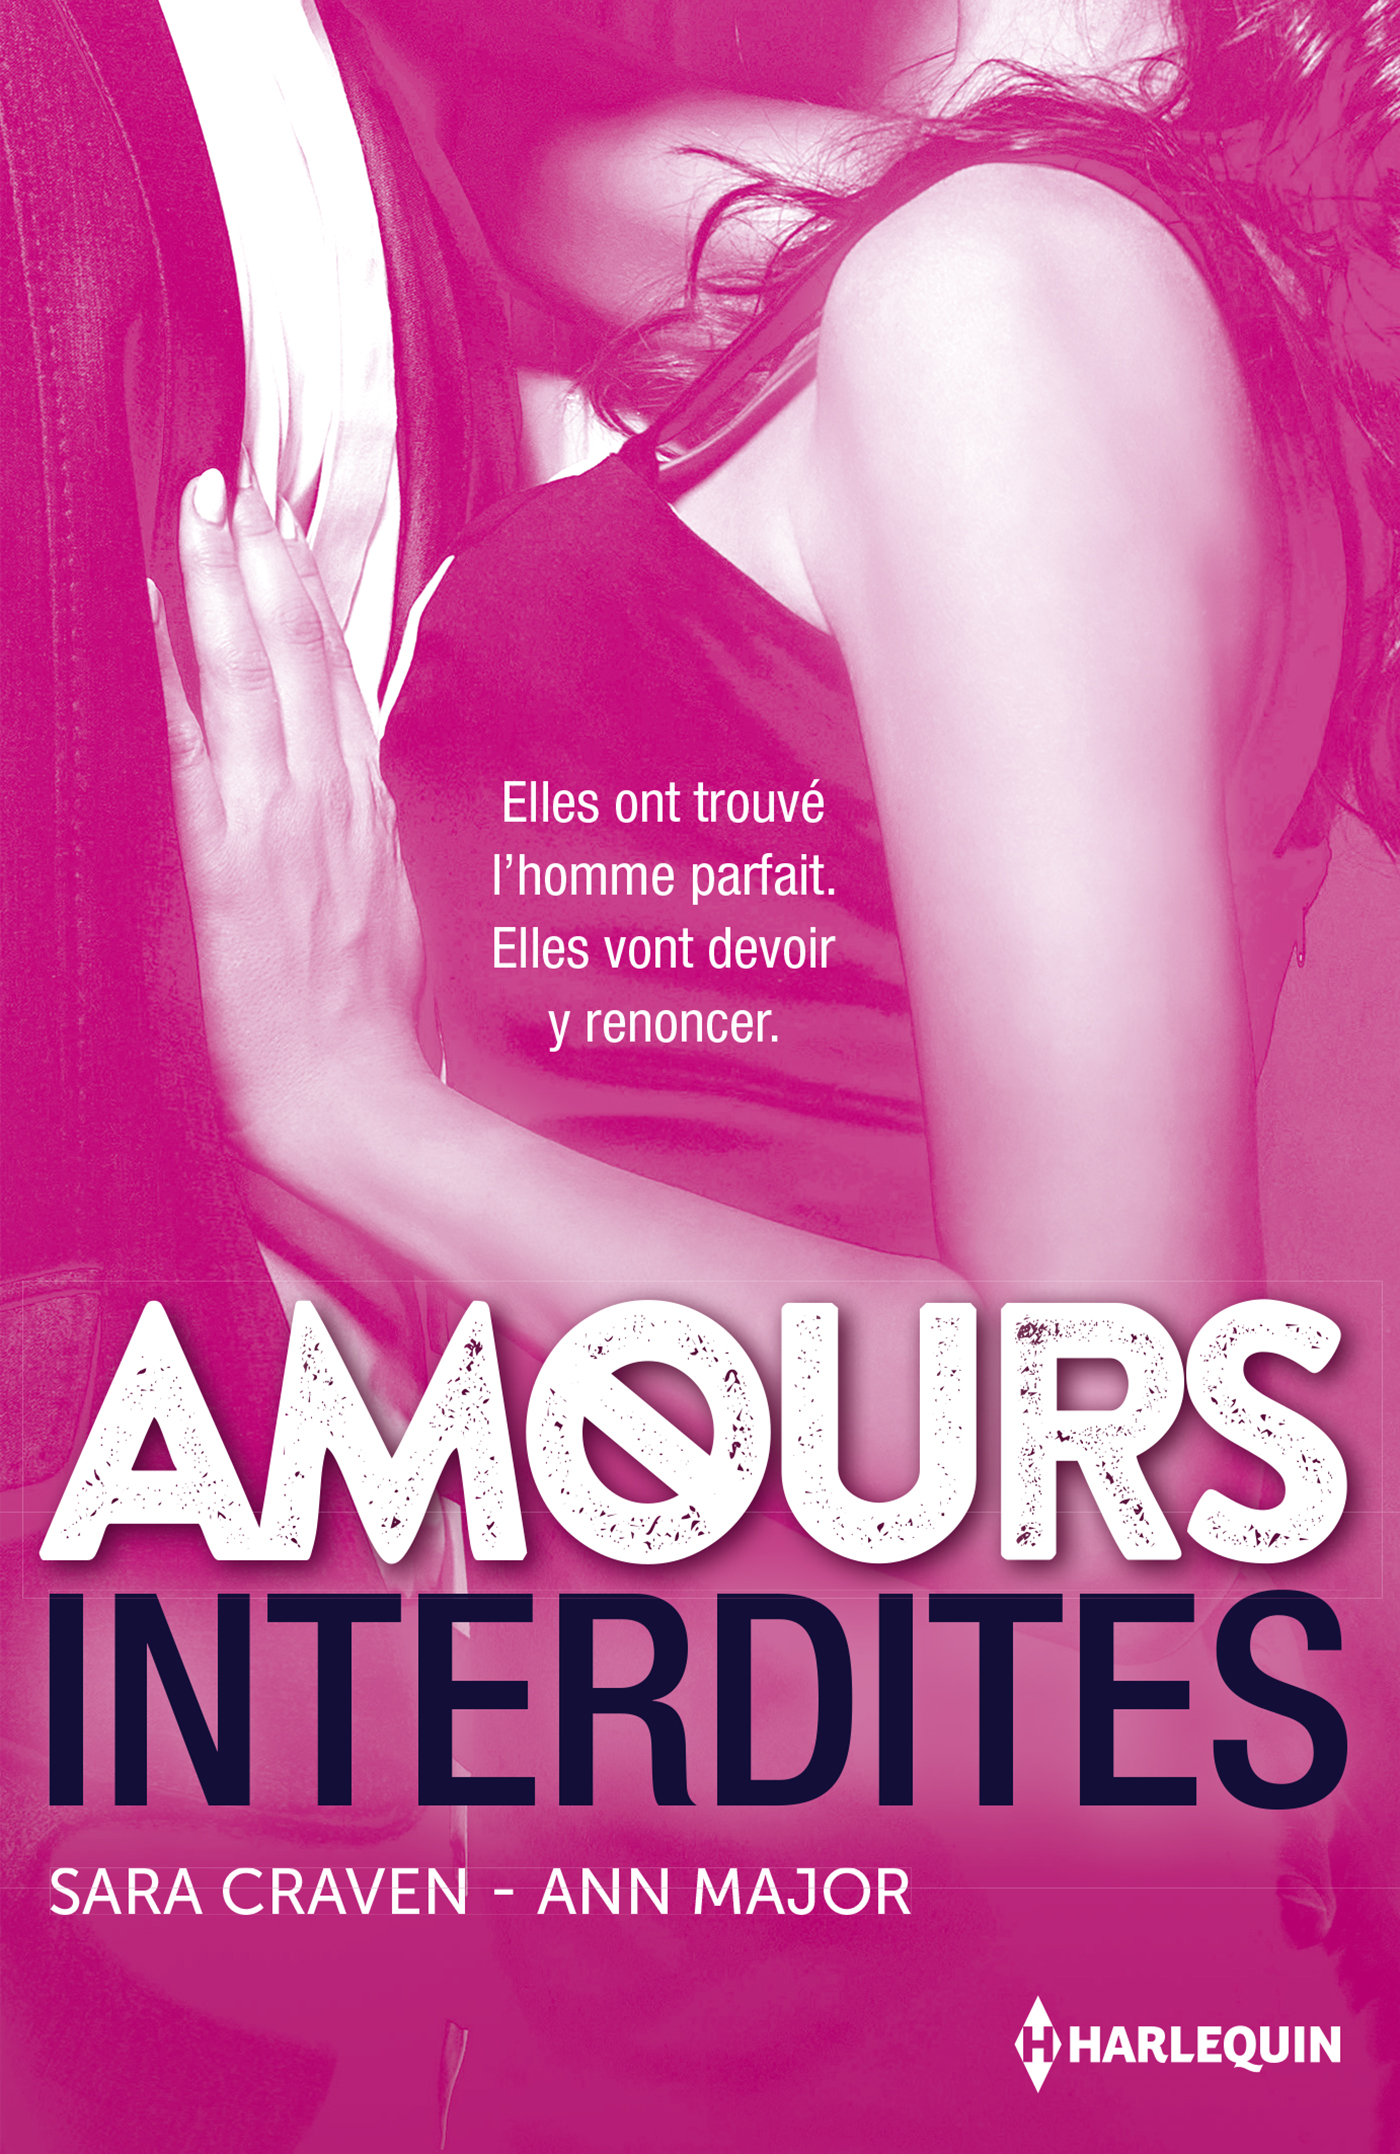 Sara Craven, Ann Major - Amours interdites / Hors Collection Harlequin